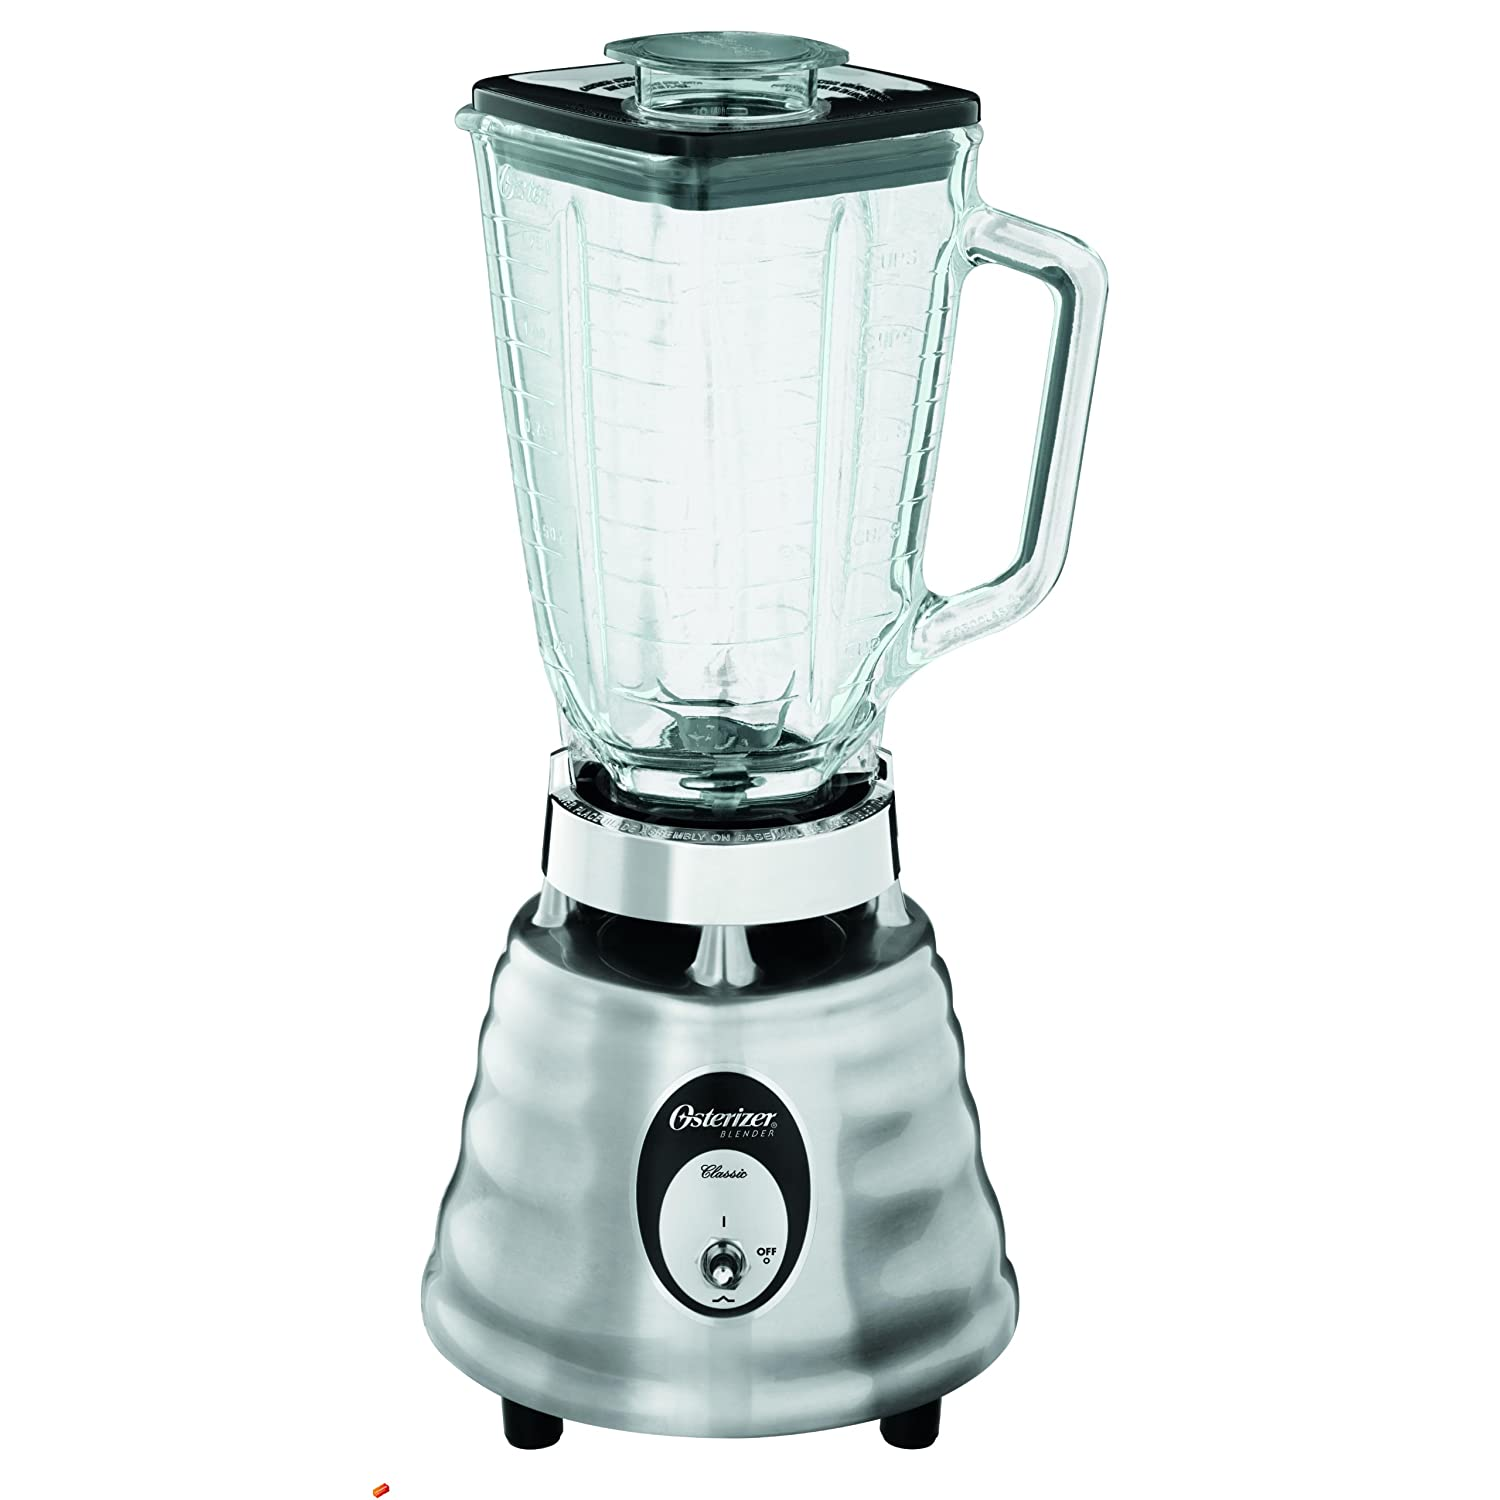 Oster 4093 Classic Beehive Blender